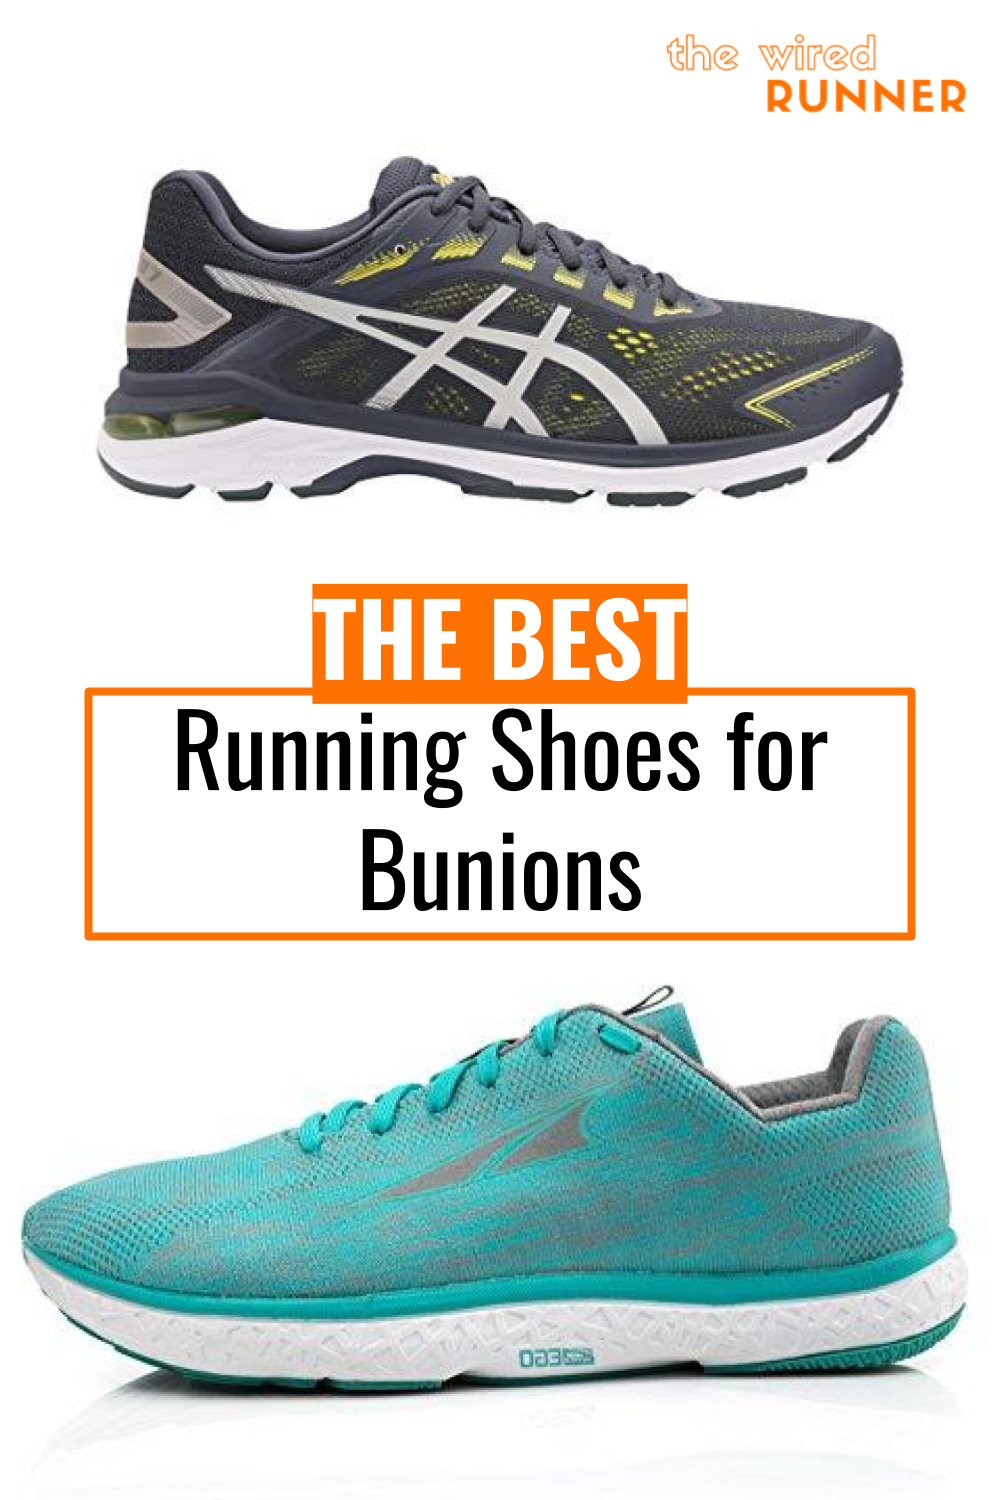 a5f95f8cc Bunions and running don't always go together – unless you find the right  shoes